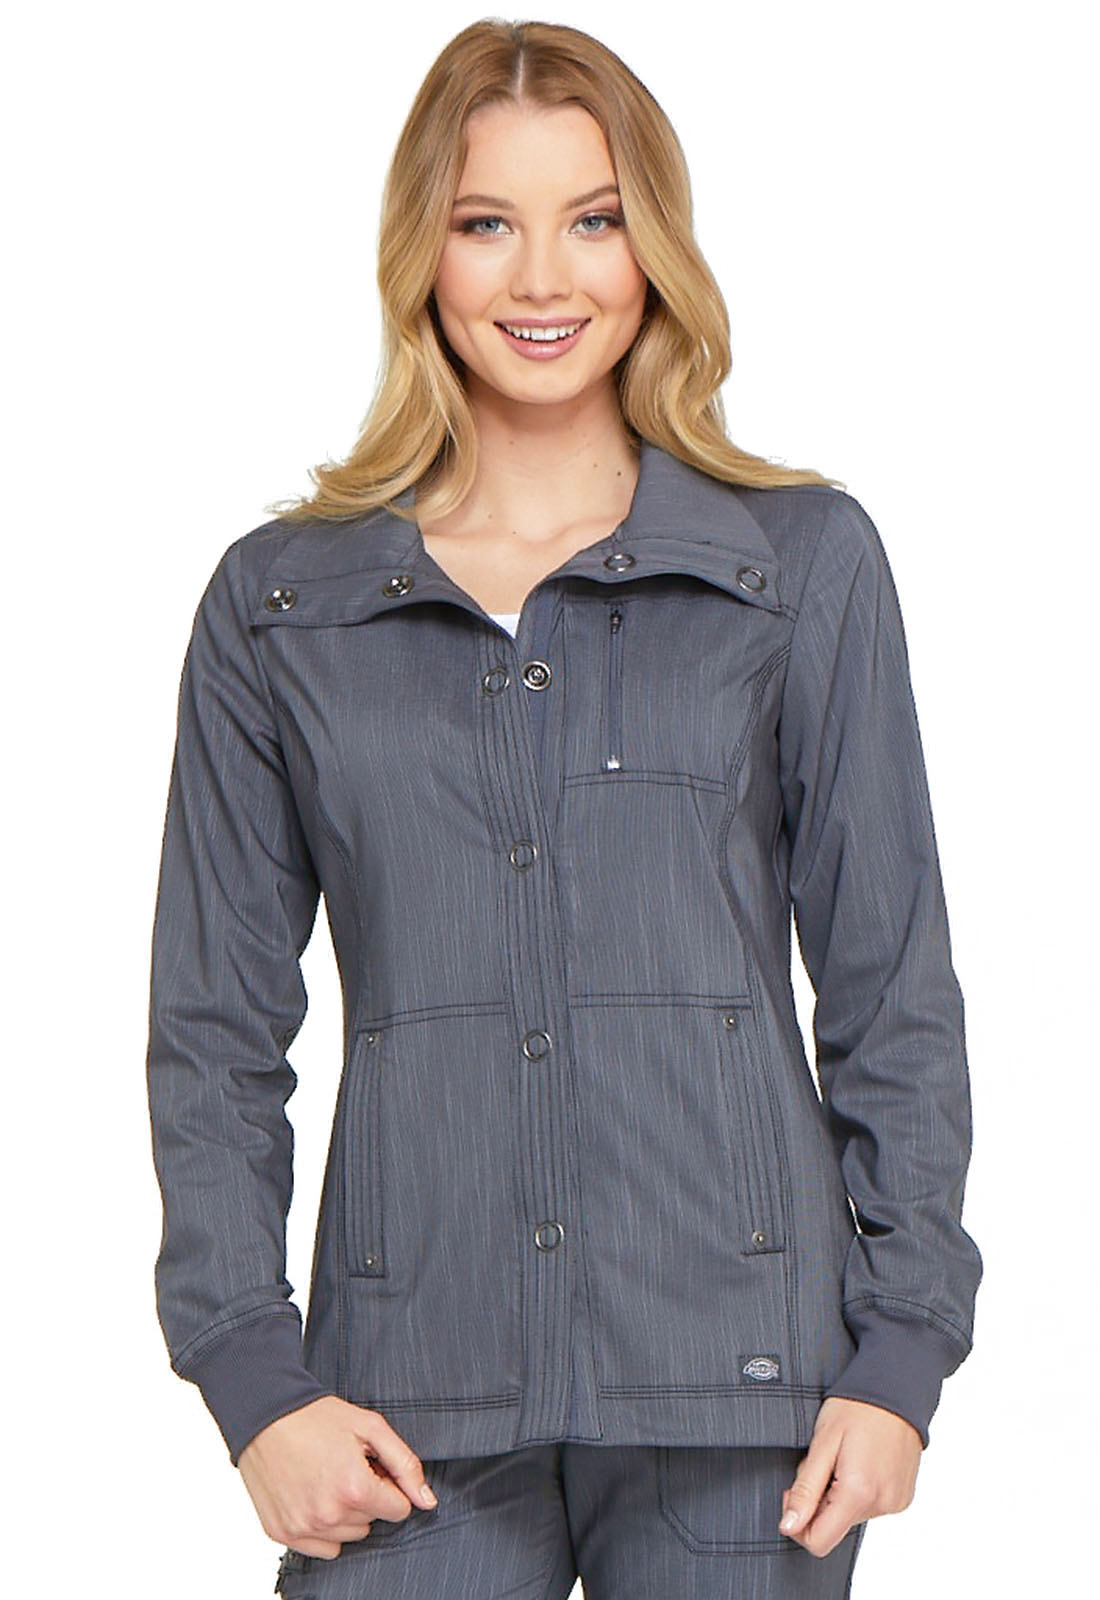 456da08a Advance Snap Front Jacket in Pewter Twist DK325-PWTT from D Christian  Uniforms